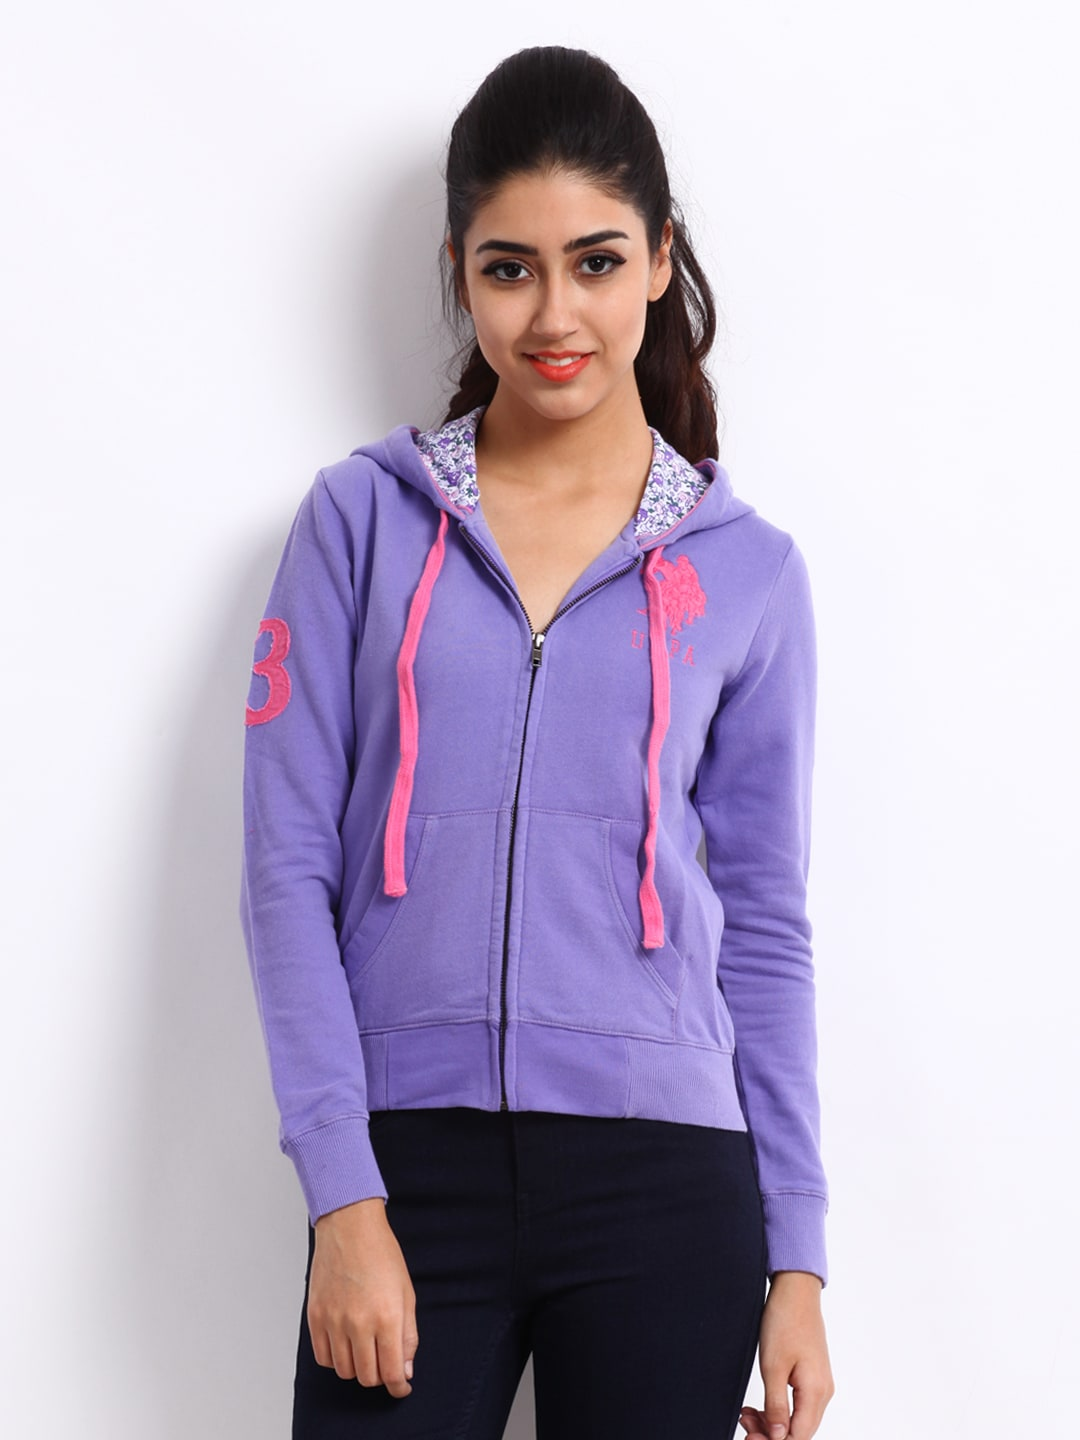 Sweat Shirts For Women